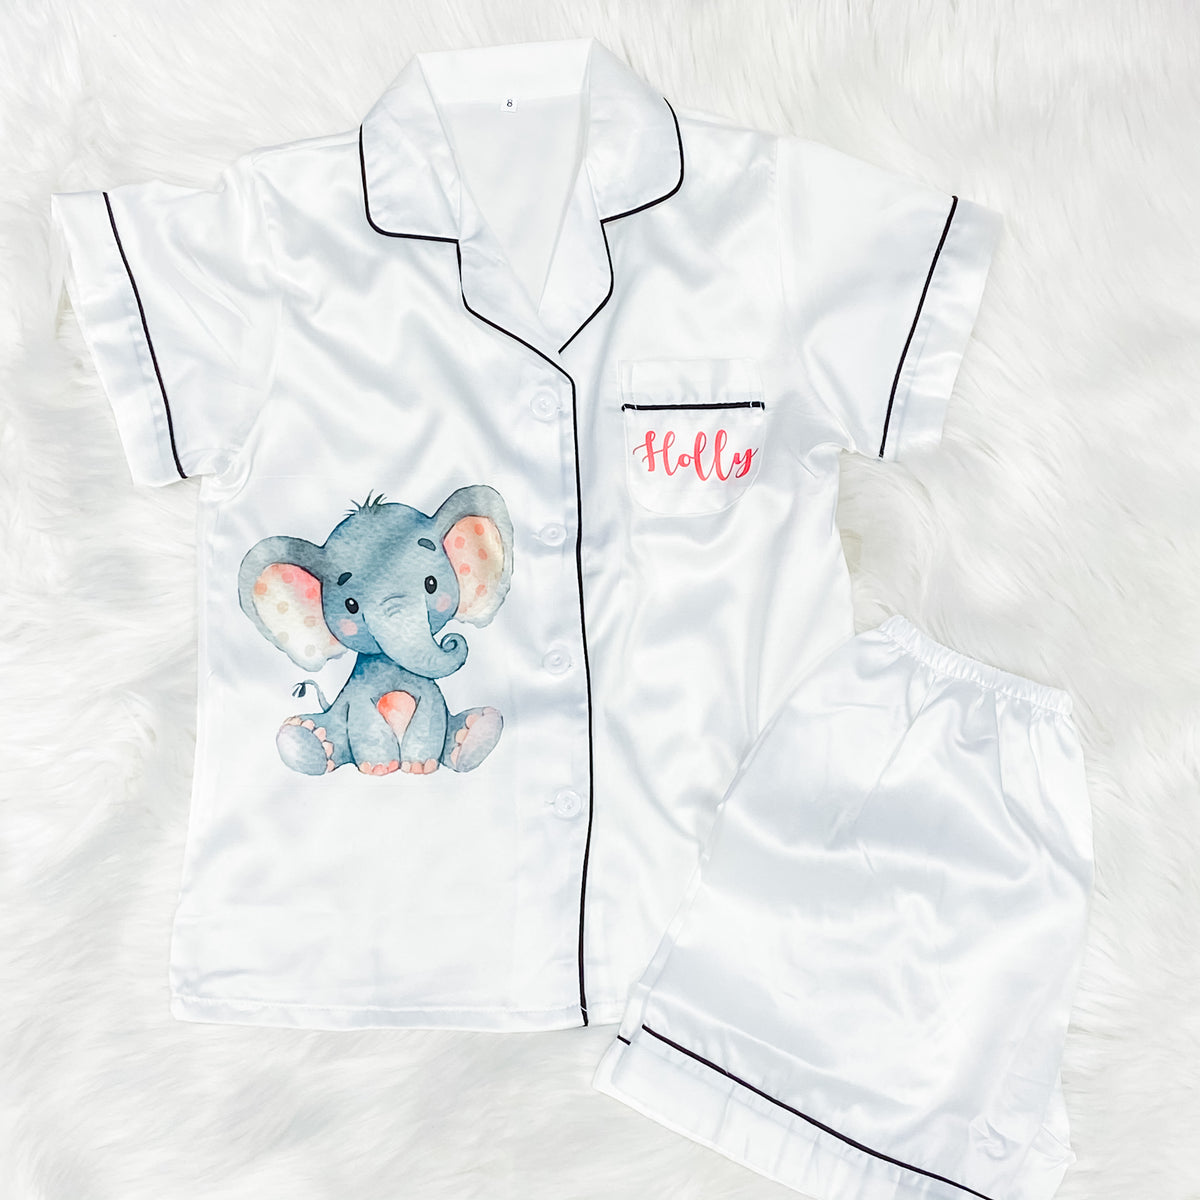 ELLIE satin personalised pyjamas for children